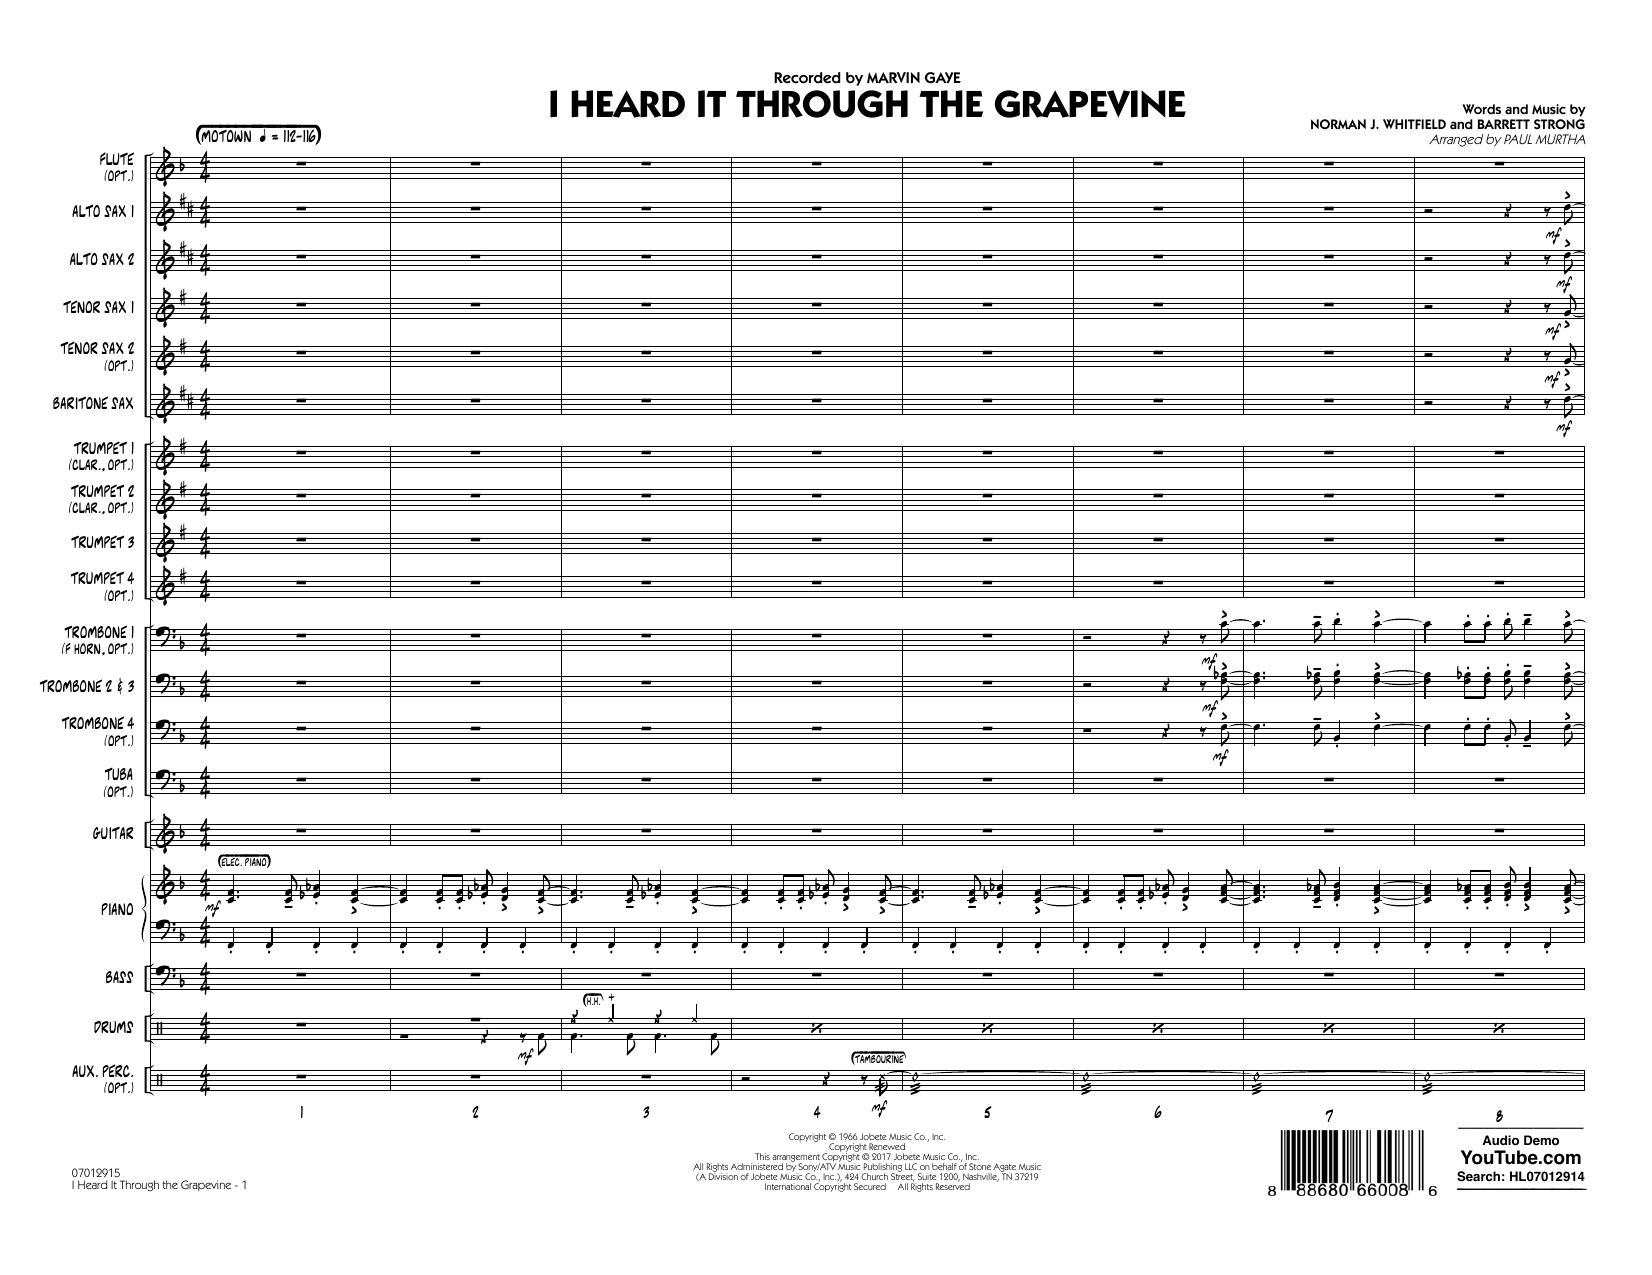 I Heard It Through the Grapevine (COMPLETE) sheet music for jazz band by Norman Whitfield, Barrett Strong, Creedence Clearwater Revival, Marvin Gaye, Michael McDonald and Paul Murtha. Score Image Preview.